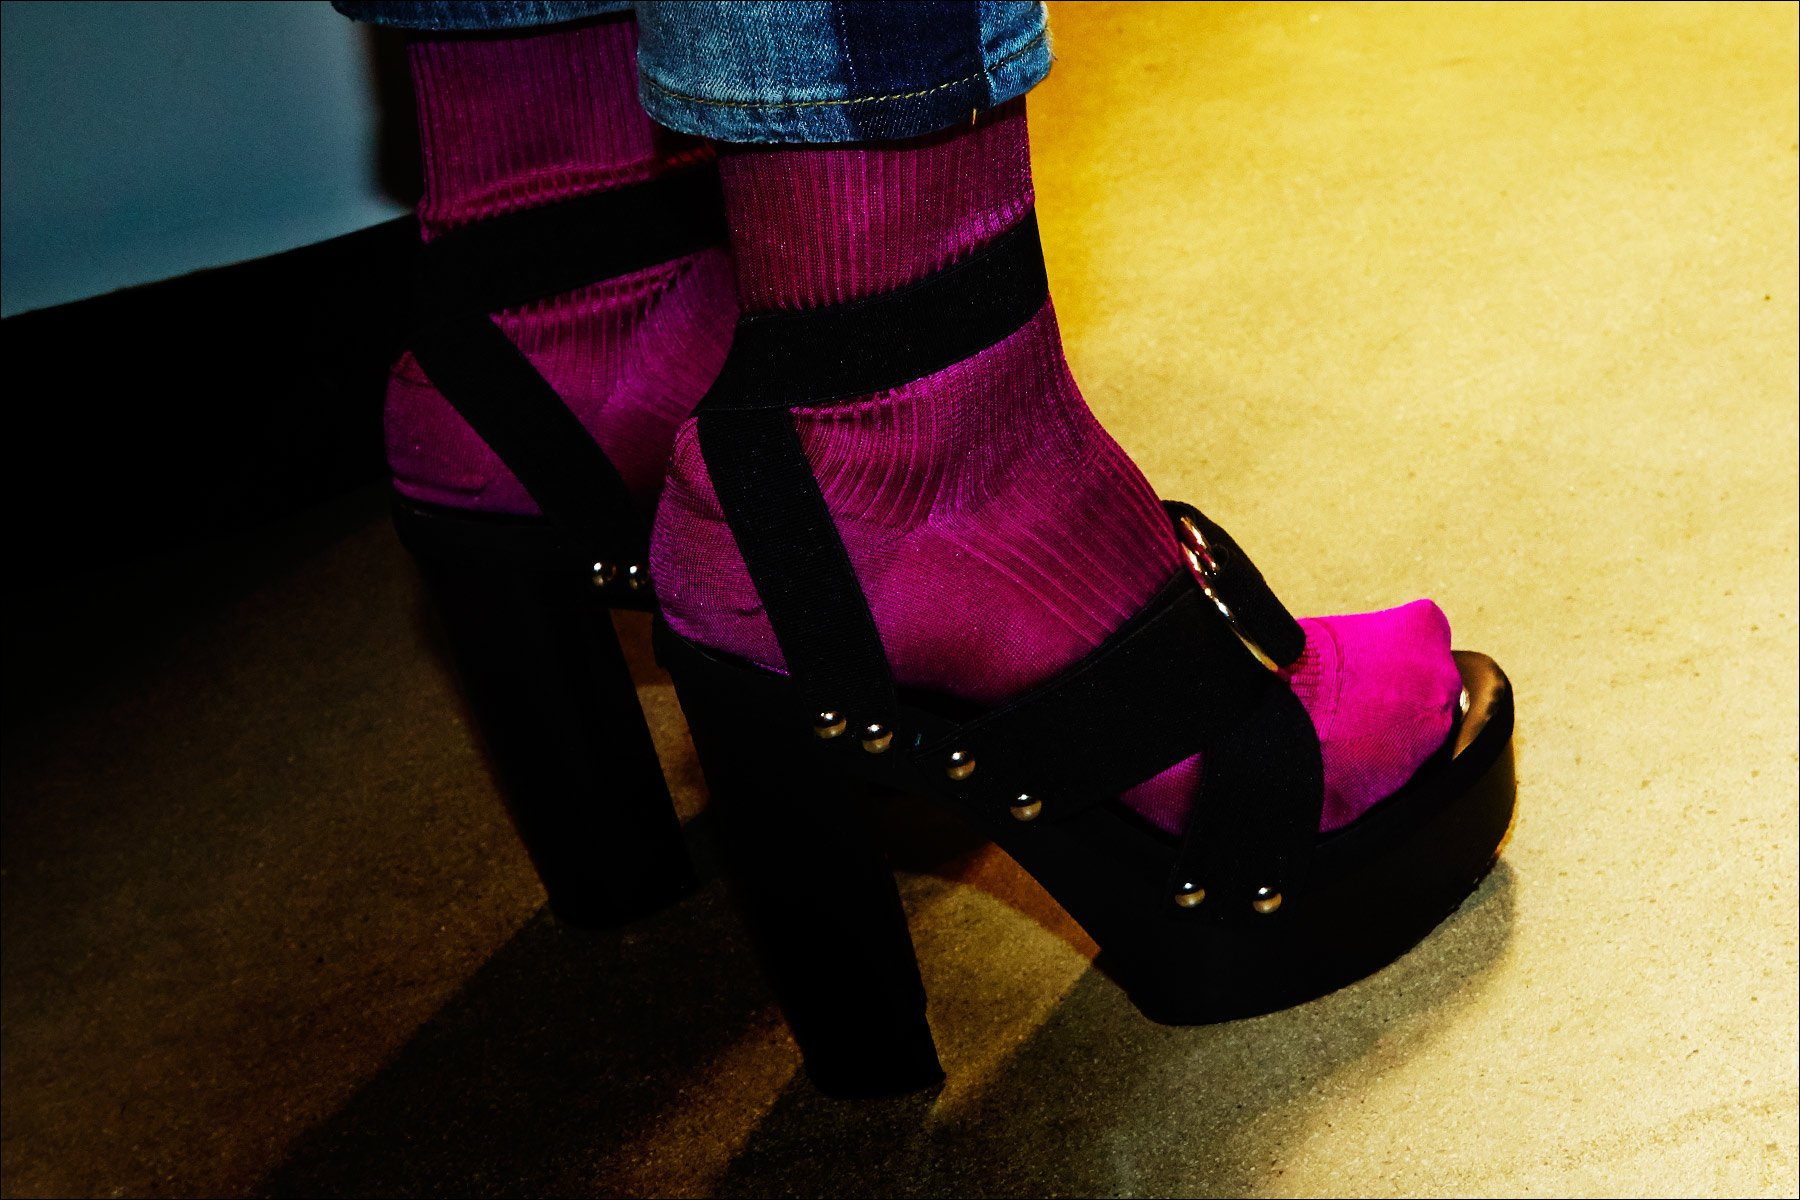 Studded platform shoes with vibrant fuchsia socks backstage at the Adam Selman Fall 2017 show. Photography by Alexander Thompson for Ponyboy magazine New York.